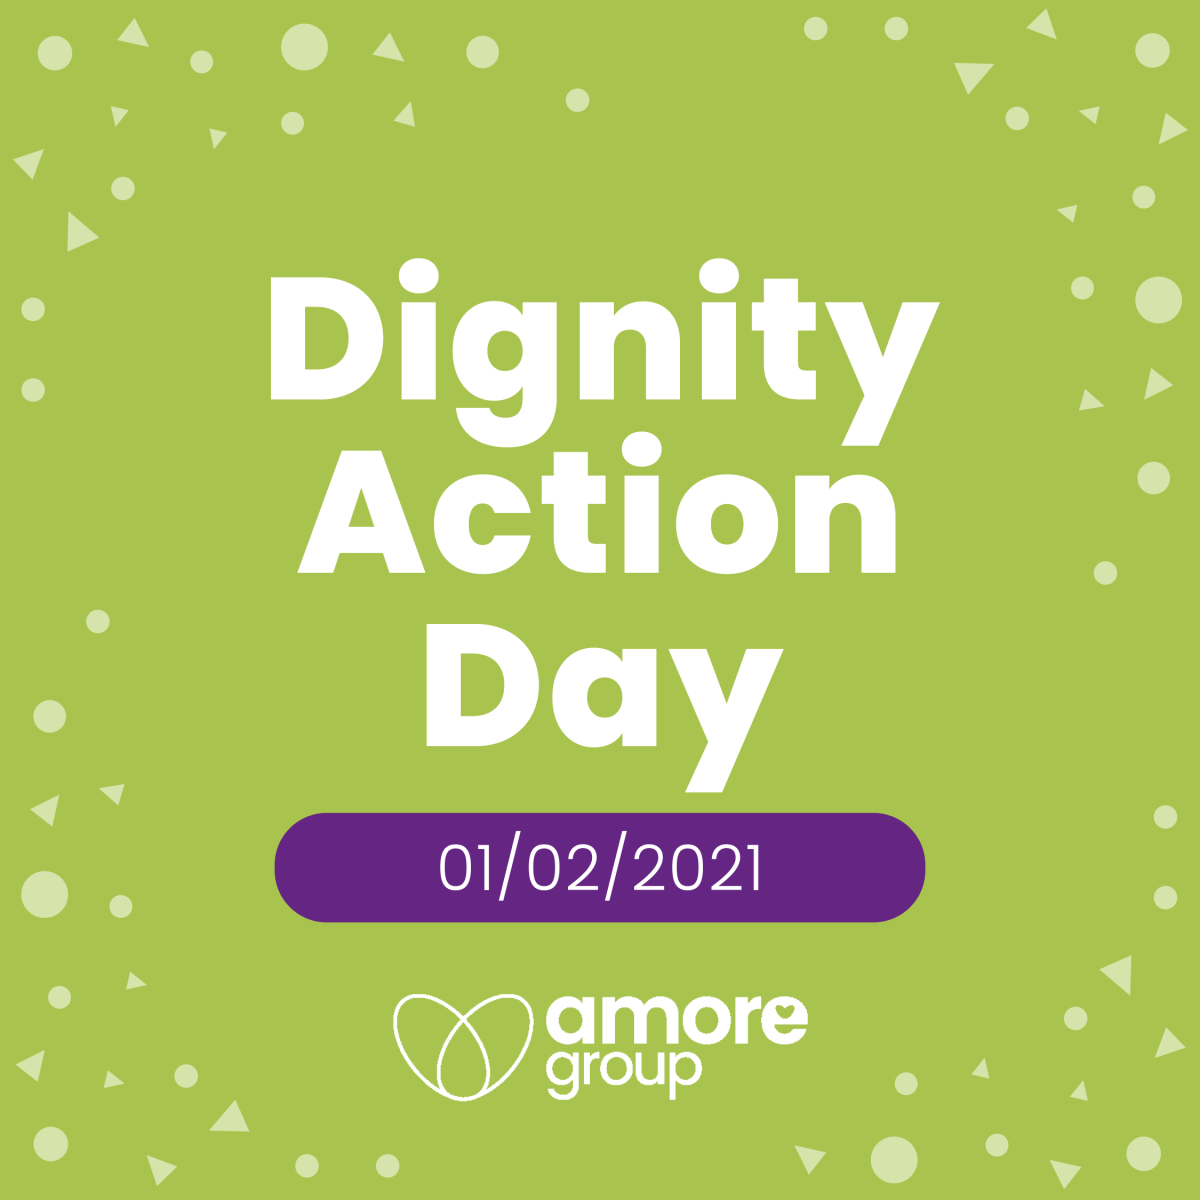 Dignity Action Day 2021